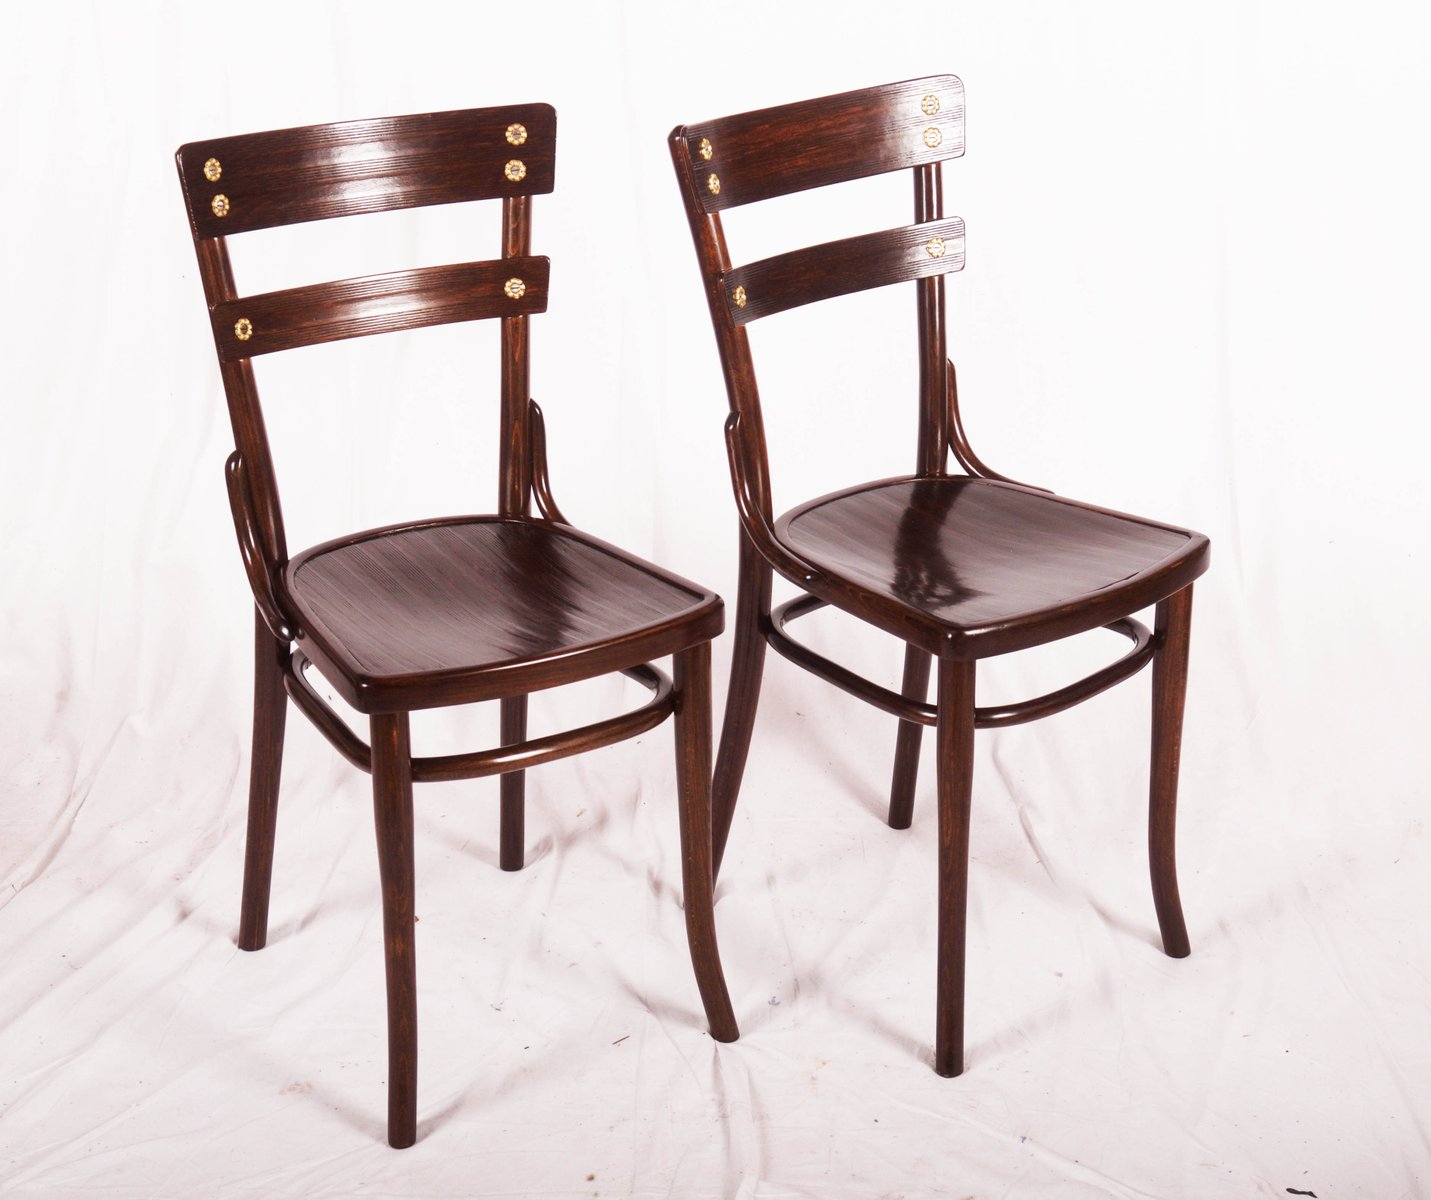 Vintage Dining Chair Antique Dining Room Chair 1900 For Sale At Pamono